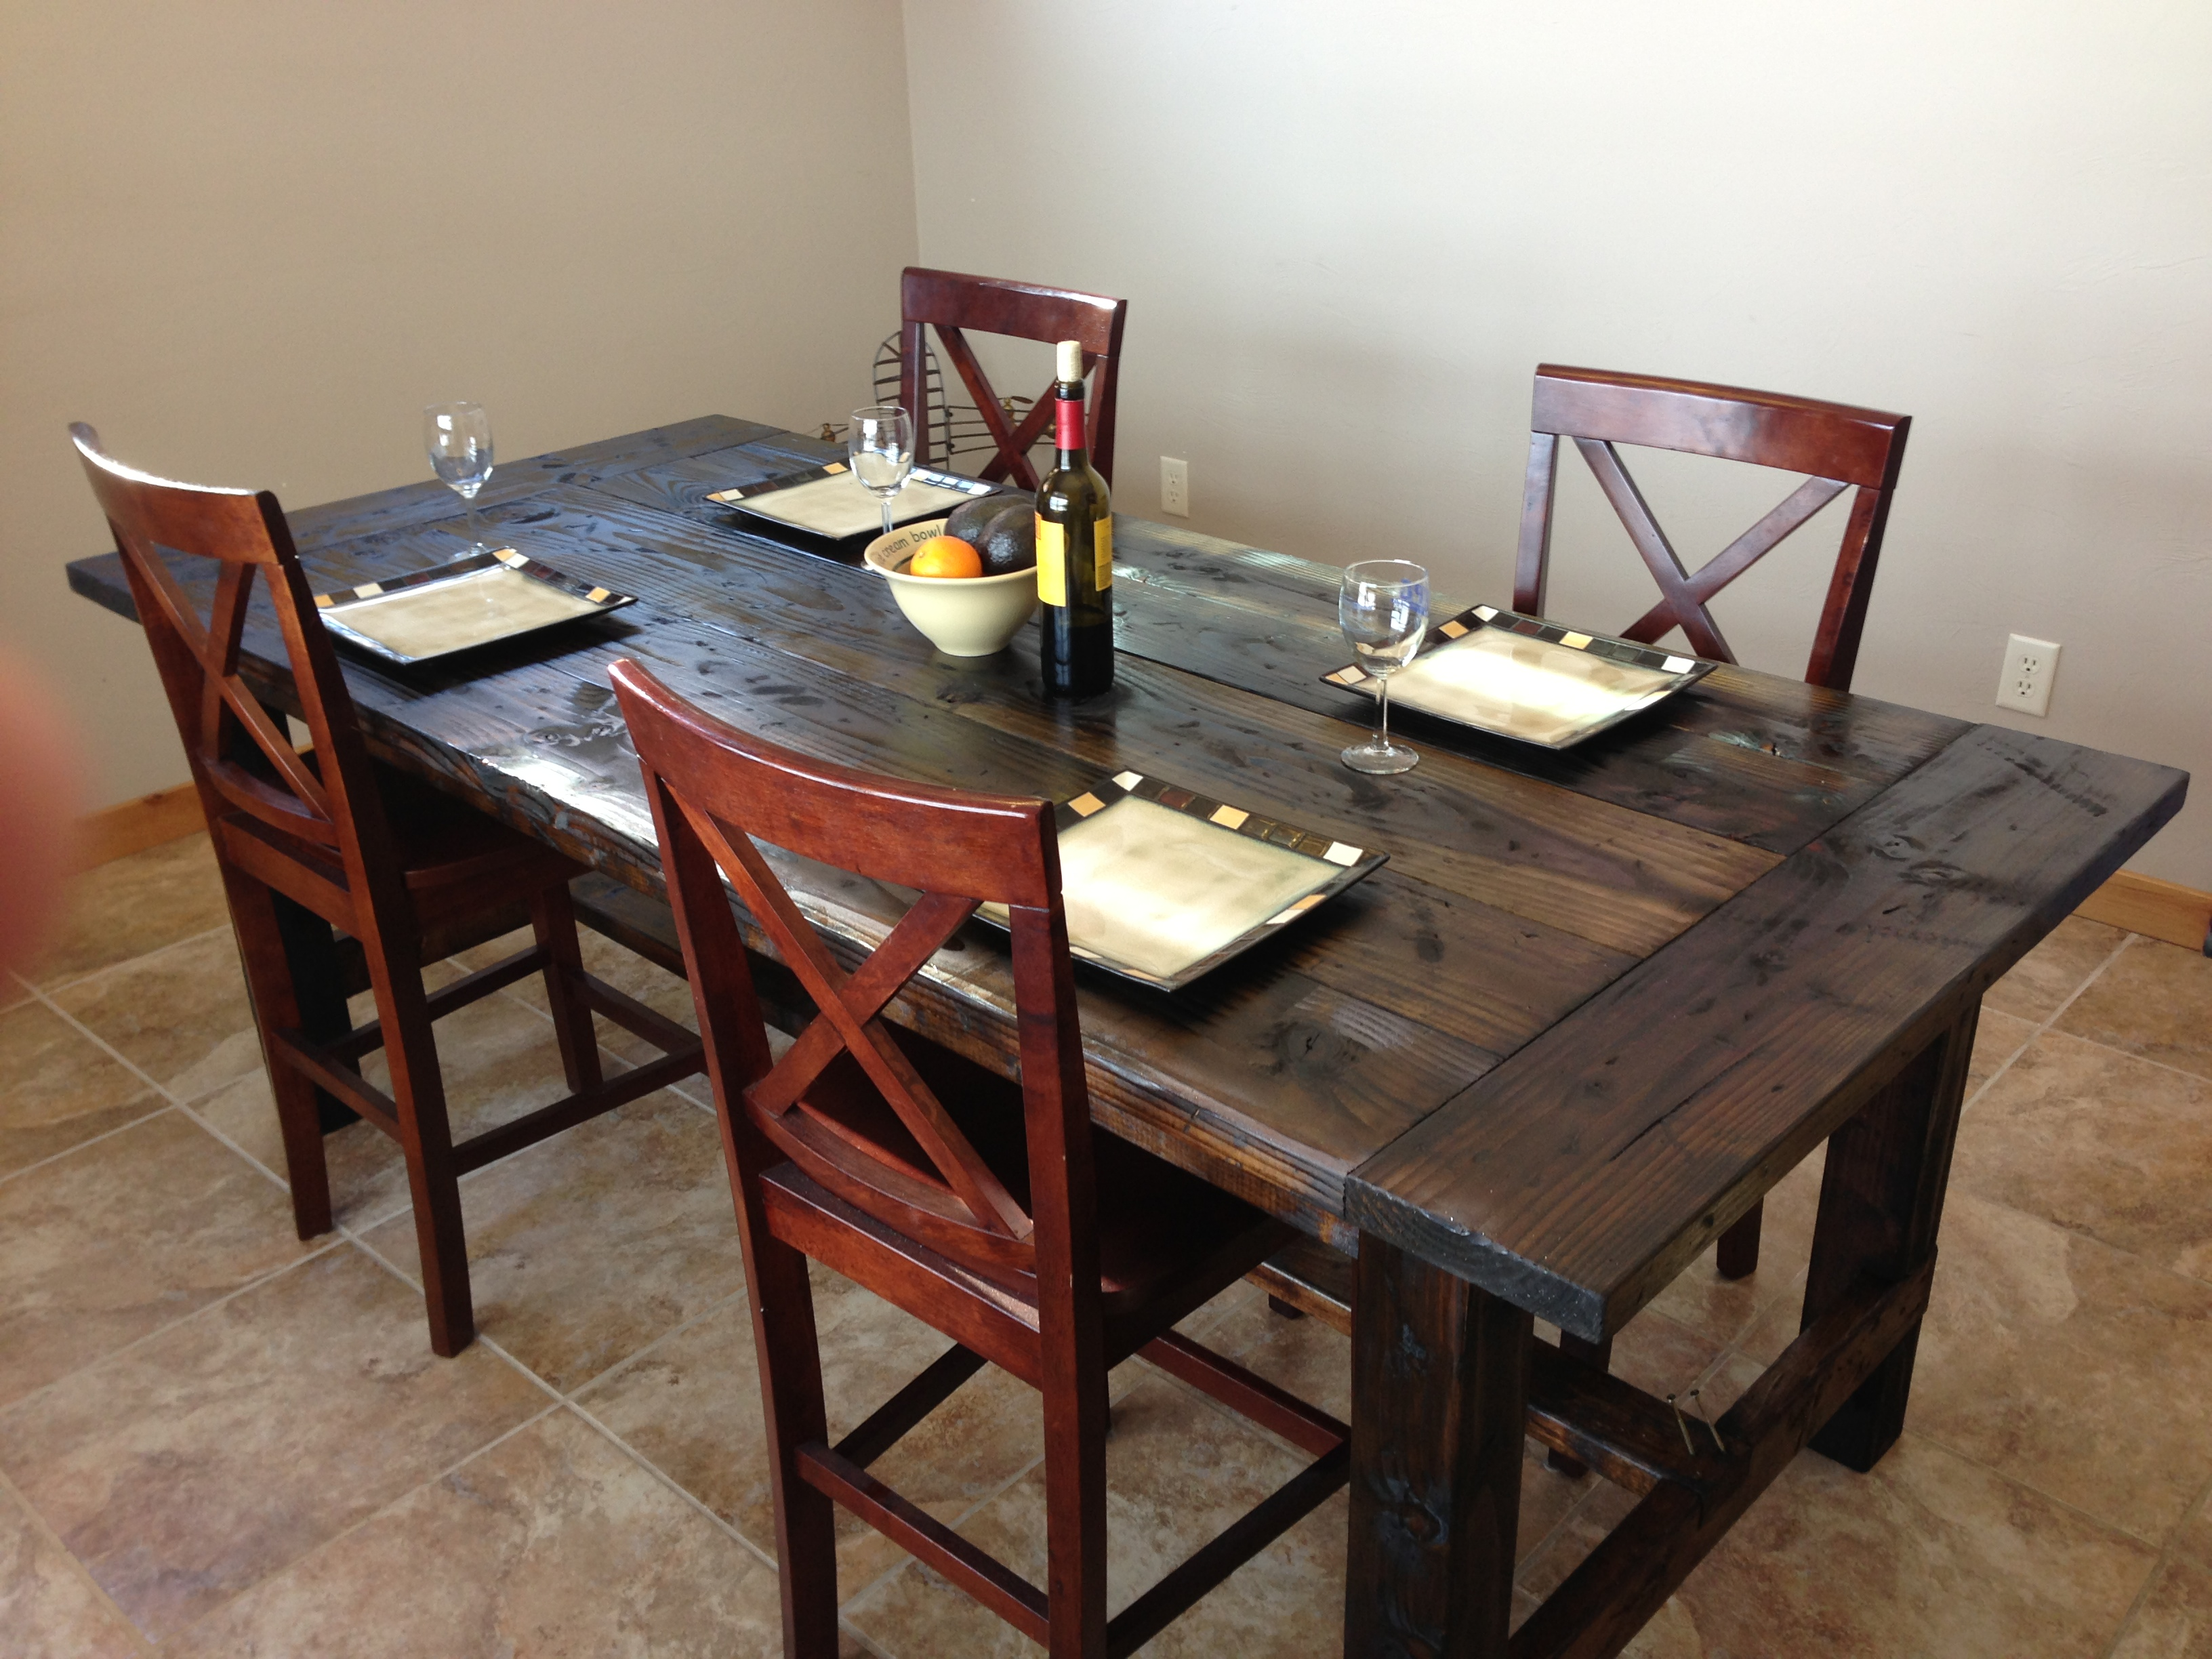 Ana white farm style dining table diy projects for Farmhouse style kitchen table